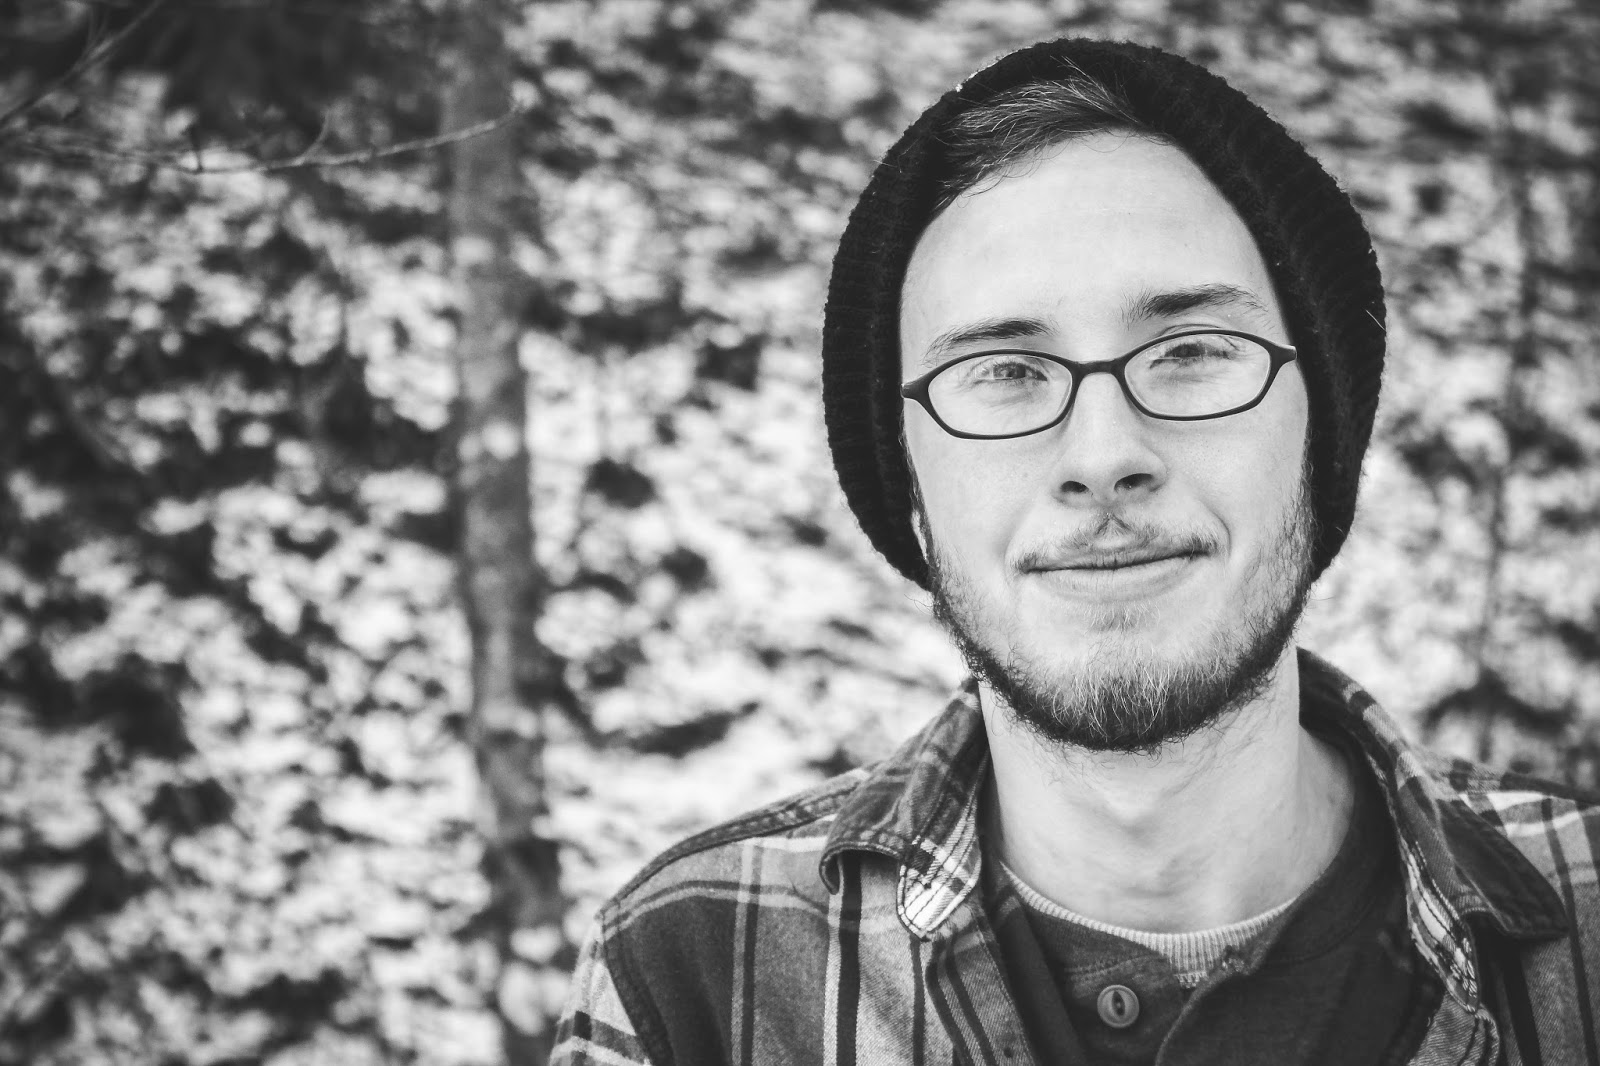 are we out of the woods yet snow georgia outdoors winter photography trees attractive beanie flannel glasses man